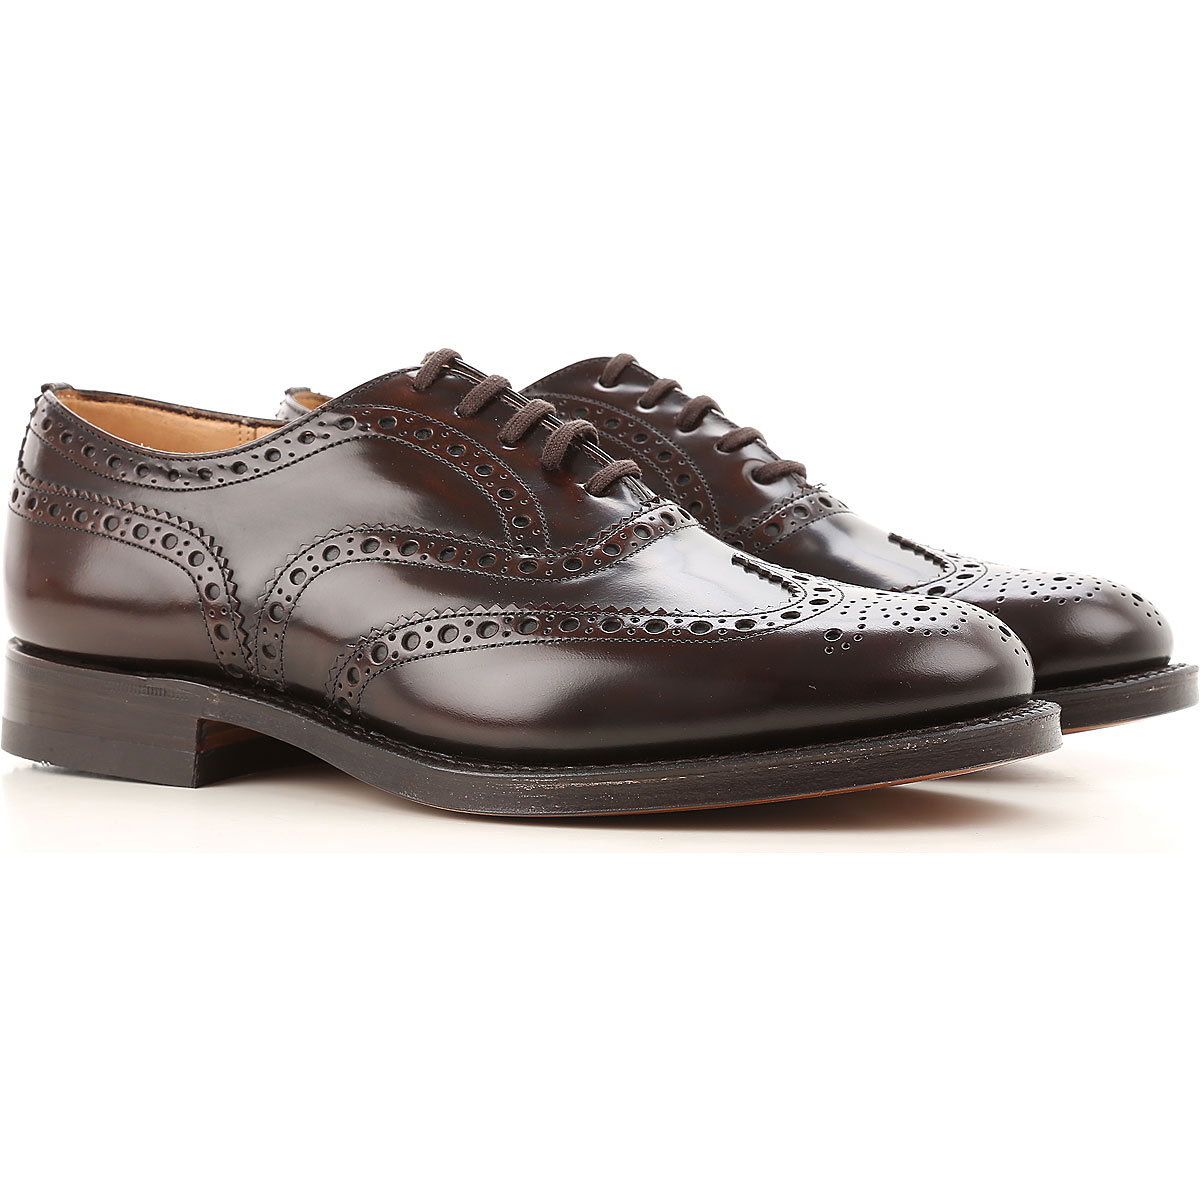 Image of Church's Brogue Shoes On Sale in Outlet, Ebony, Leather, 2017, 7 8.5